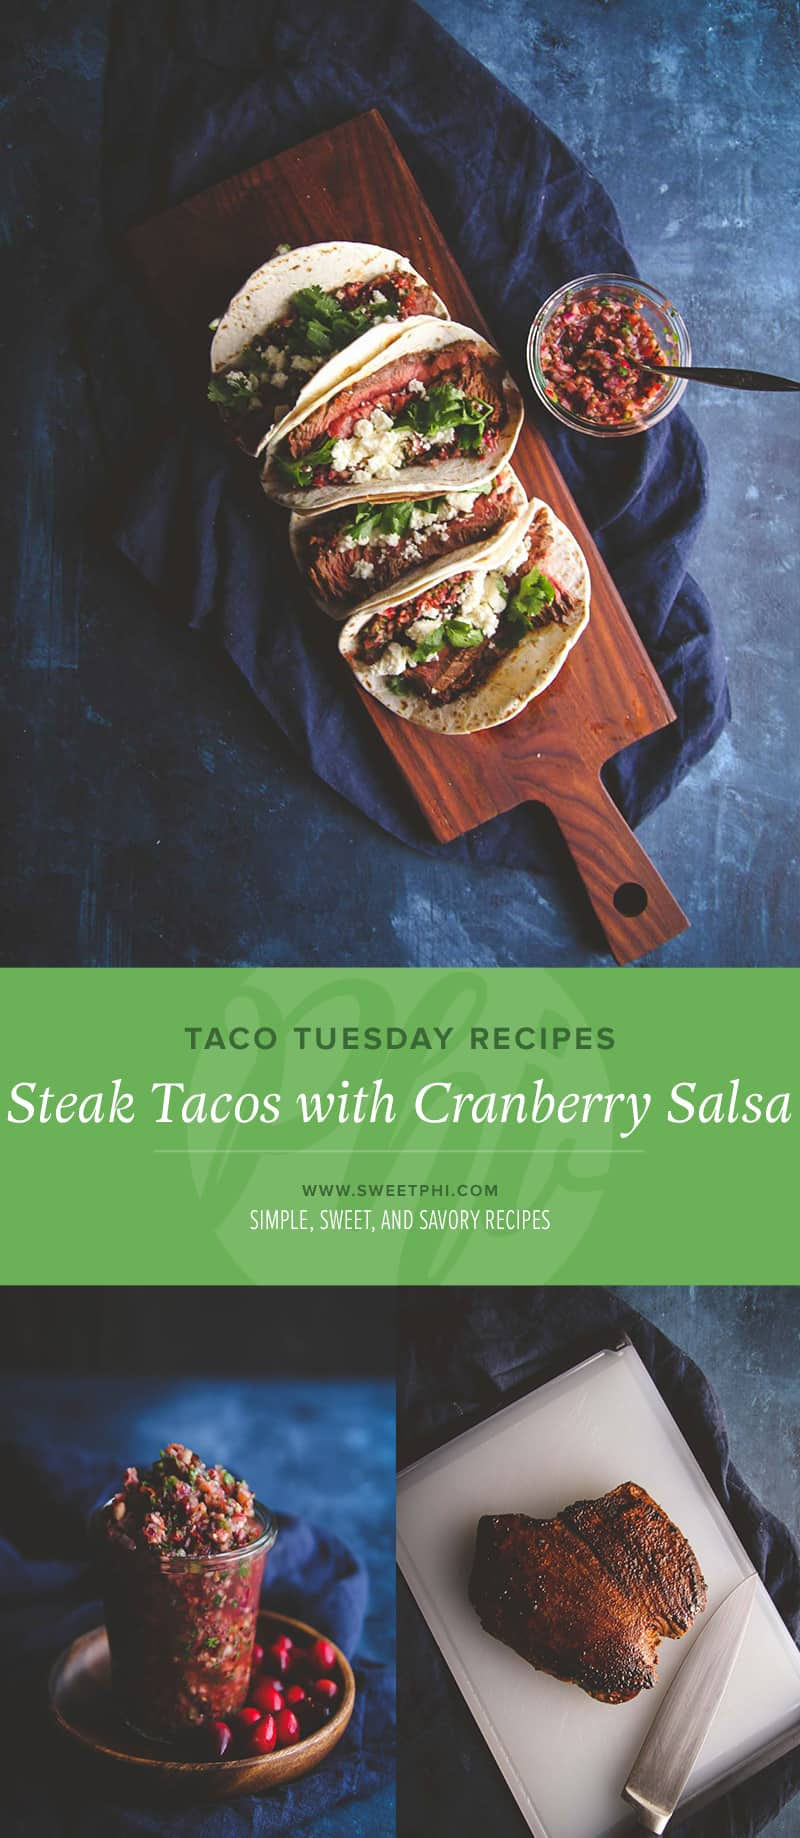 Taco Tuesday recipes - steak tacos with fresh cranberry salsa. Fall cranberry recipes, fresh cranberry recipes @sweetphi